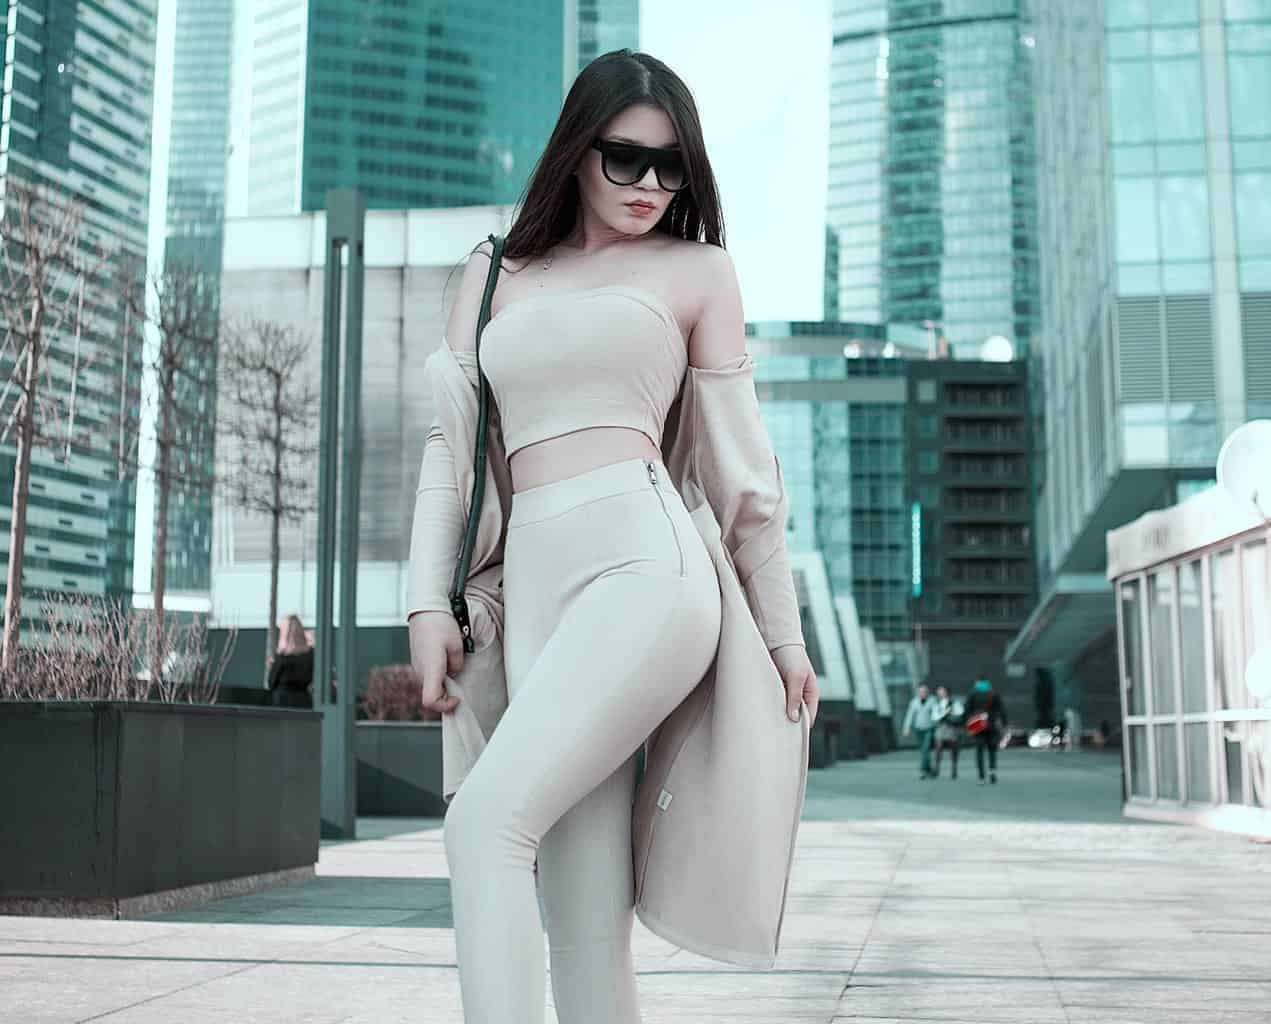 Woman in a nude tube top and leggings with a matching coat and sunglasses